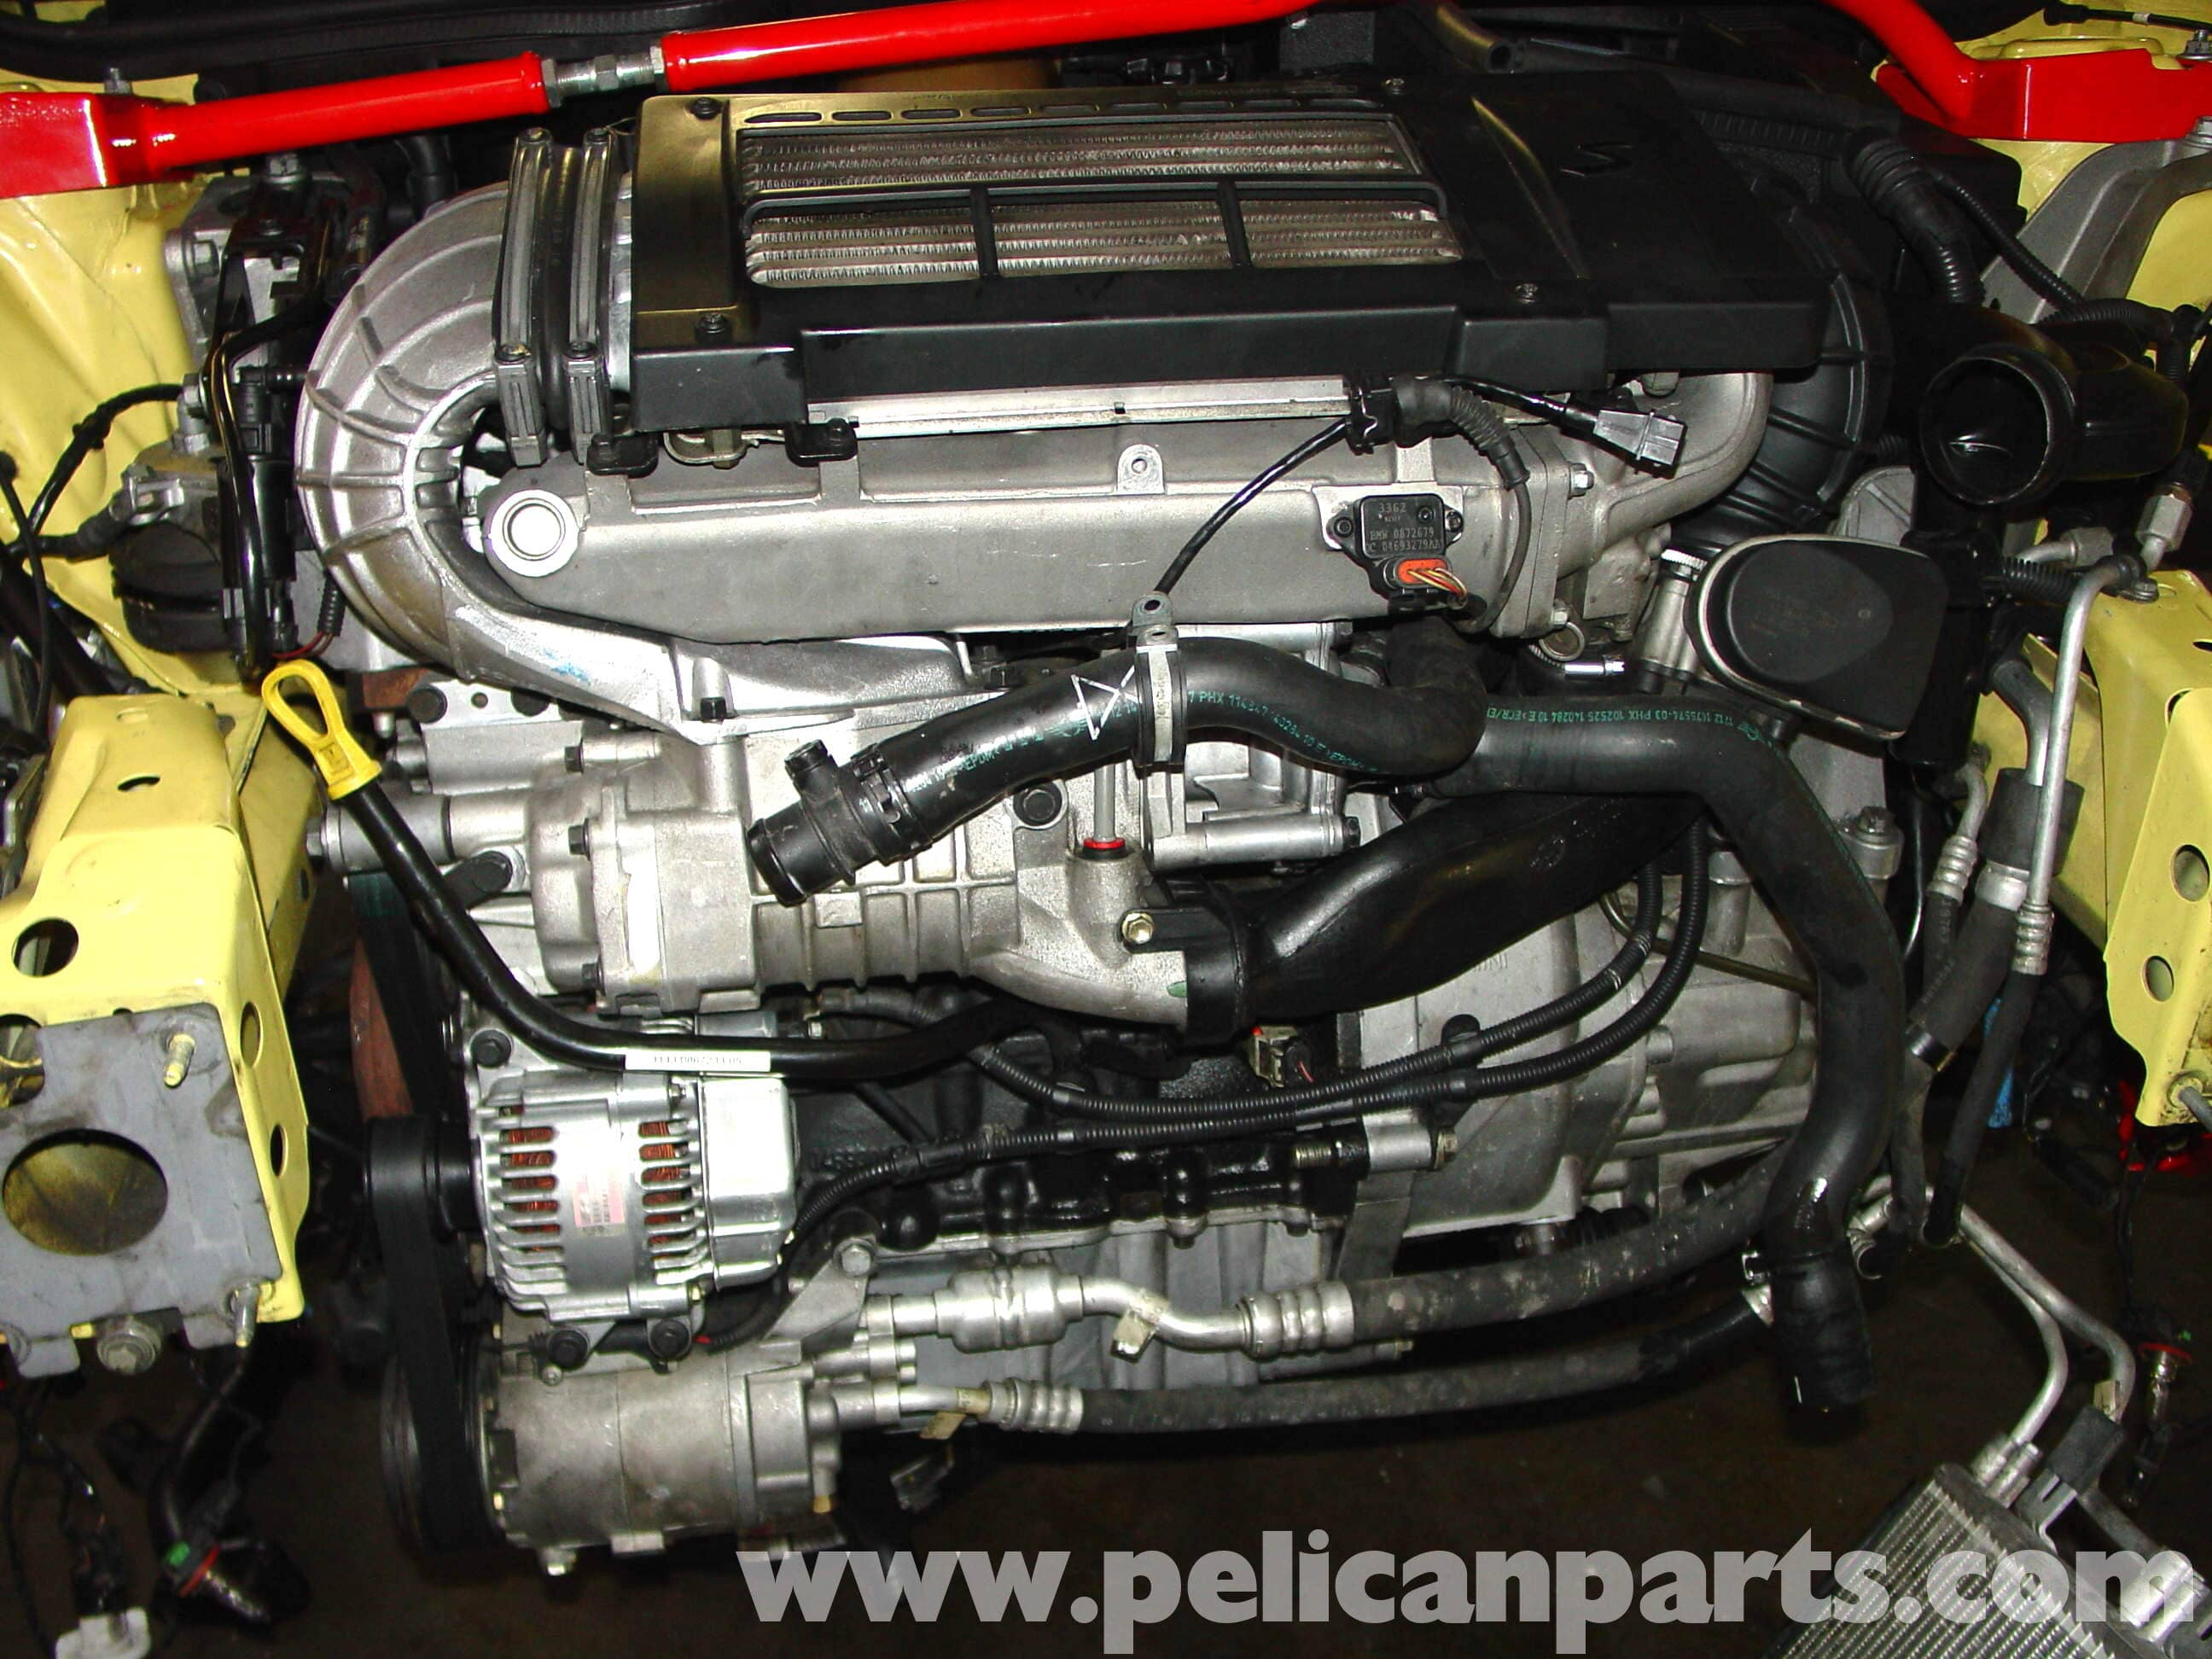 2010 Mini Cooper Engine Diagram | Best Wiring Liry Mini Cooper Engine Diagram on 2010 ford f150 engine diagram, 2010 mercury milan engine diagram, 2010 honda cr-v engine diagram, 2010 lincoln mkx engine diagram, 2010 ford fusion hybrid engine diagram, 2010 toyota tundra engine diagram, 2010 honda pilot engine diagram, 2010 toyota matrix engine diagram, 2010 dodge ram 1500 engine diagram, 2010 cadillac srx engine diagram, 2010 ford flex engine diagram, 2010 gmc terrain engine diagram, 2010 chrysler sebring engine diagram, 2010 jeep grand cherokee engine diagram, 2010 dodge challenger engine diagram, 2010 ford explorer engine diagram, 2010 dodge charger engine diagram, 2010 jeep patriot engine diagram, 2010 mazda 5 engine diagram, 2010 chevrolet impala engine diagram,